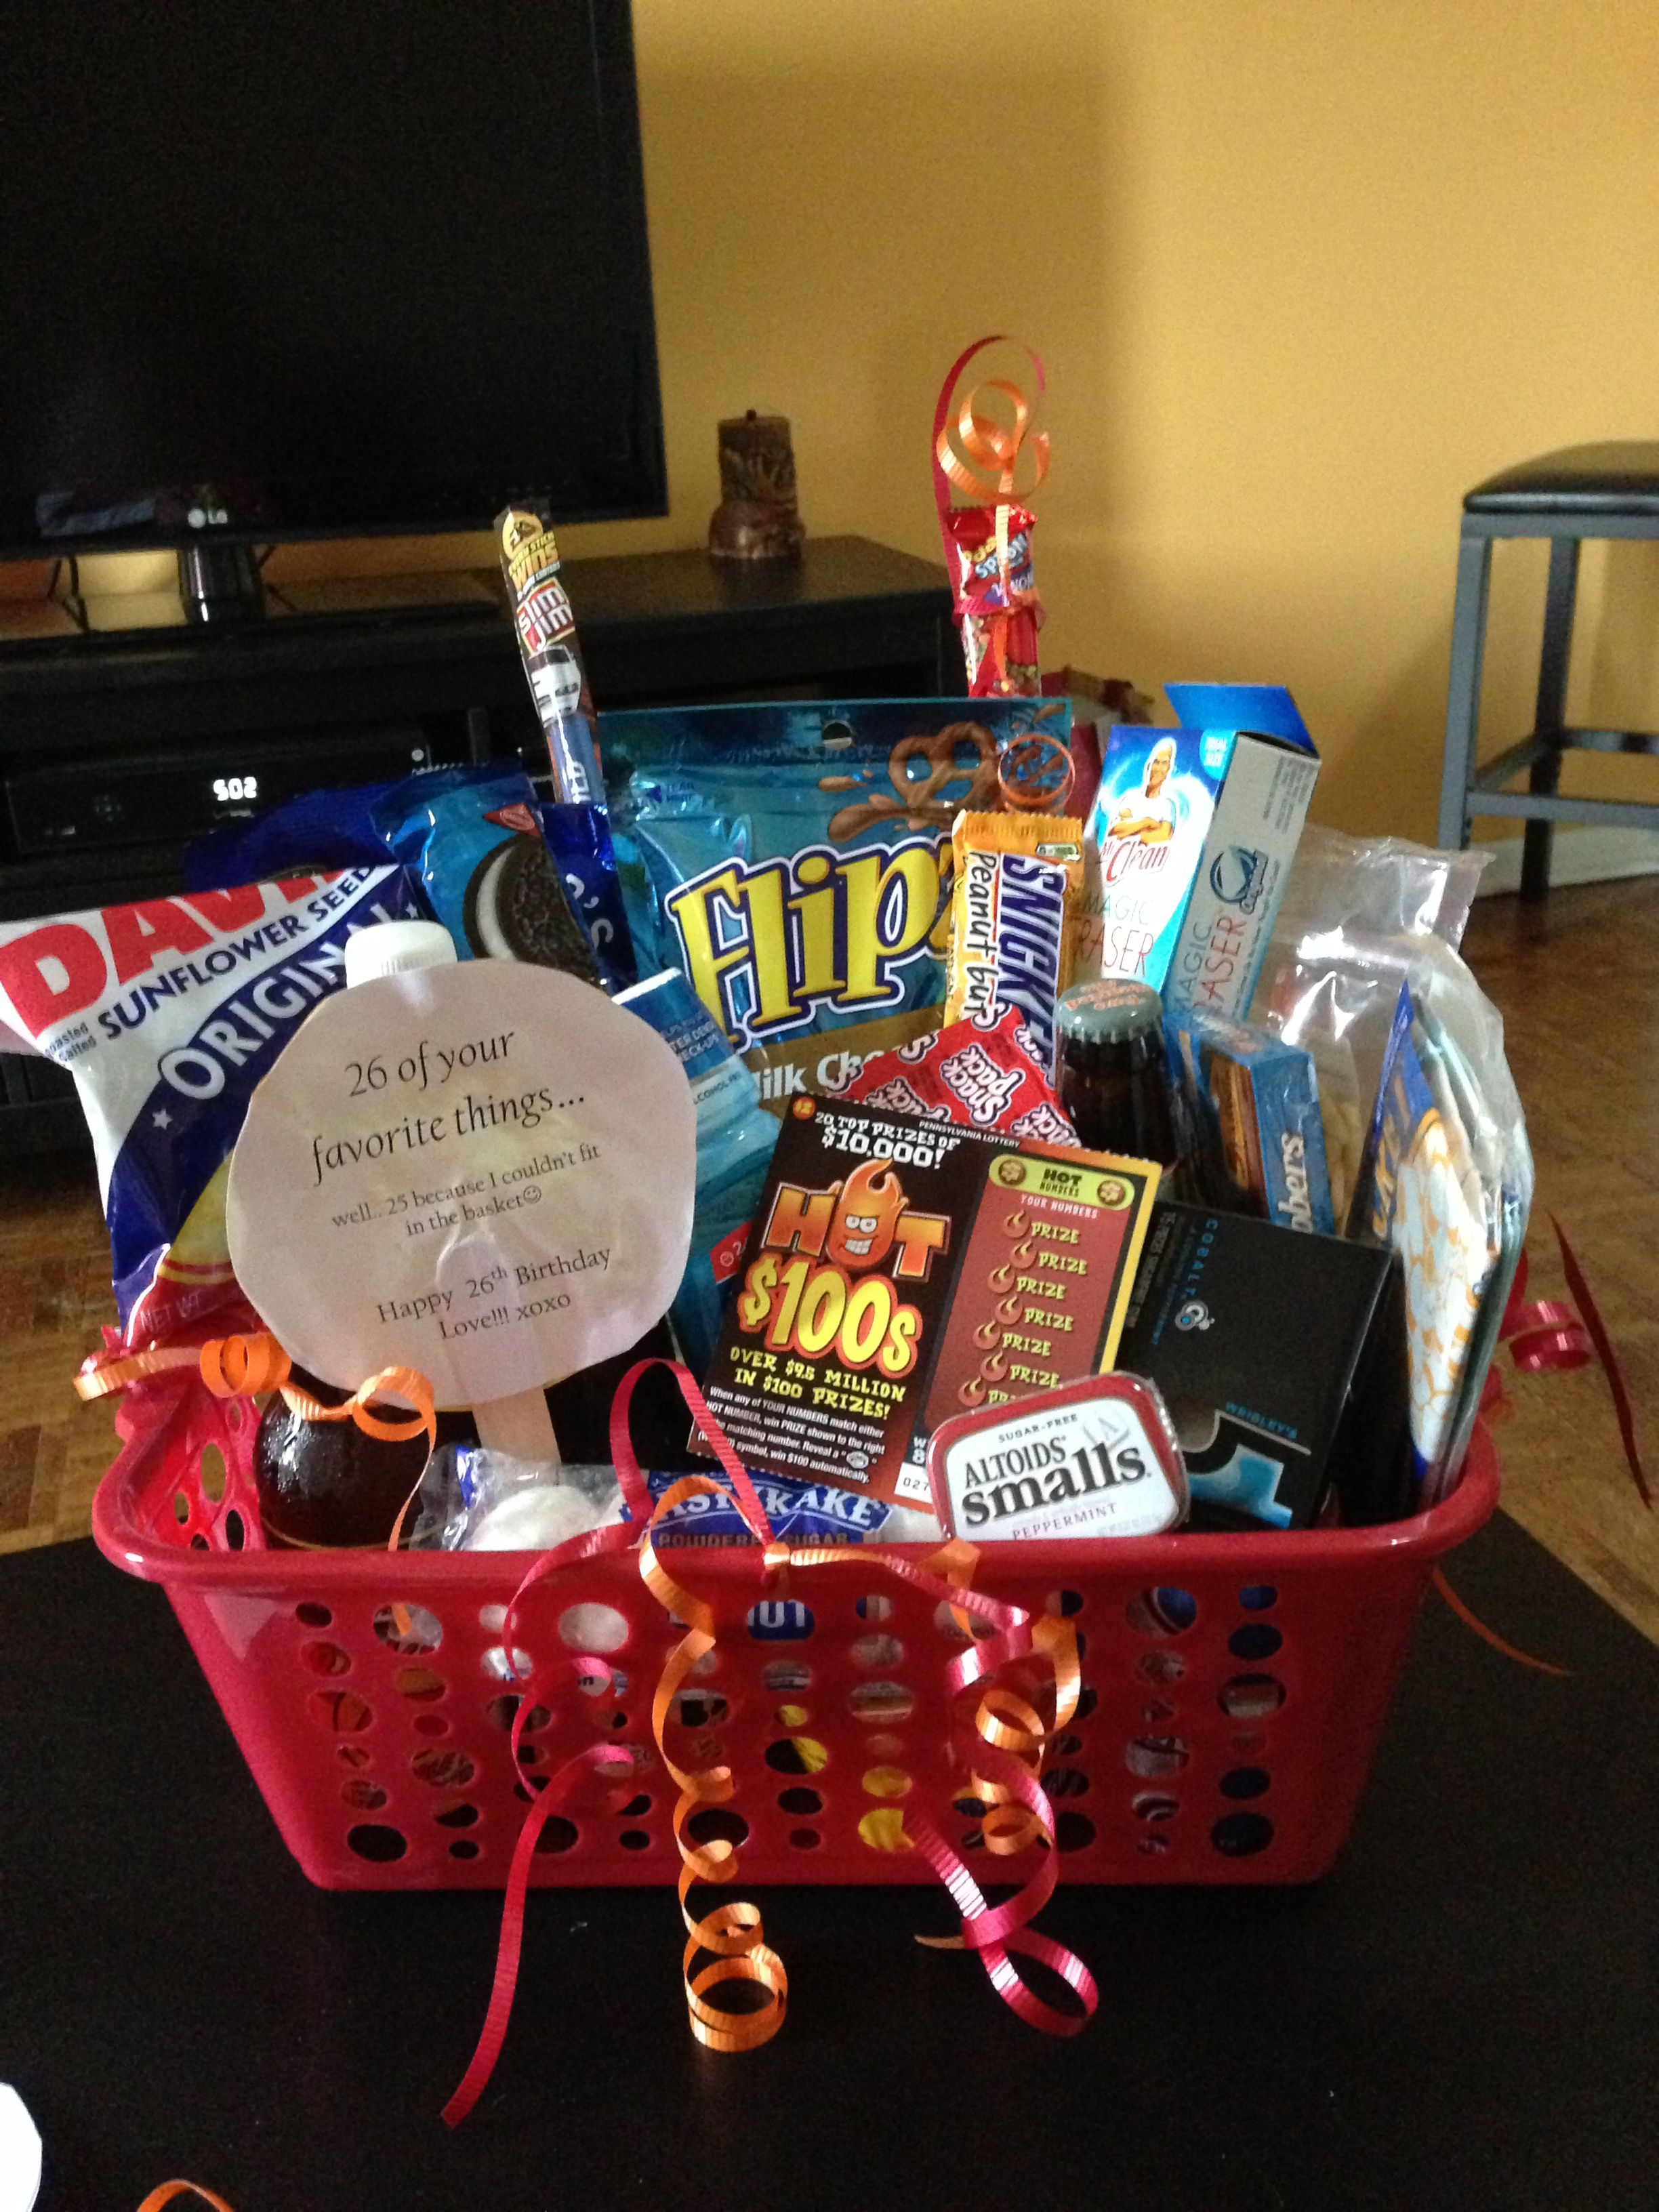 Boyfriend Birthday Basket 26 Of His Favorite Things For His